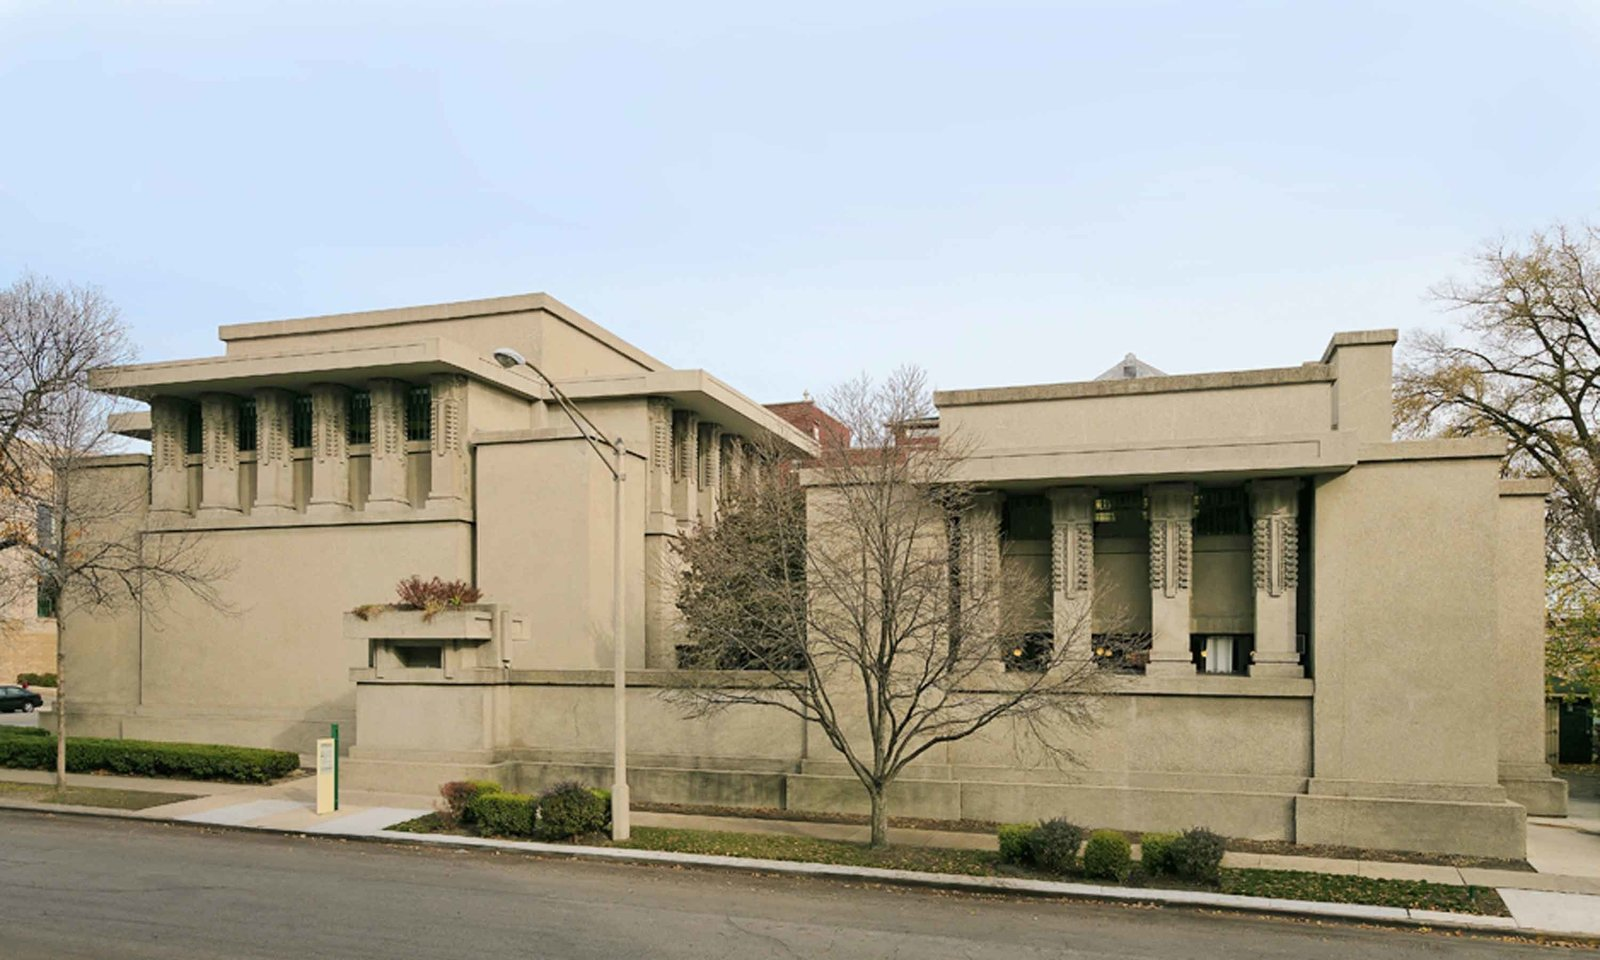 Unity Temple (1905, Oak Park, Illinois). This structure was one of the first public buildings to be made with affordable, poured-in-place reinforced concrete.  Iconic Frank Lloyd Wright Buildings by Allie Weiss